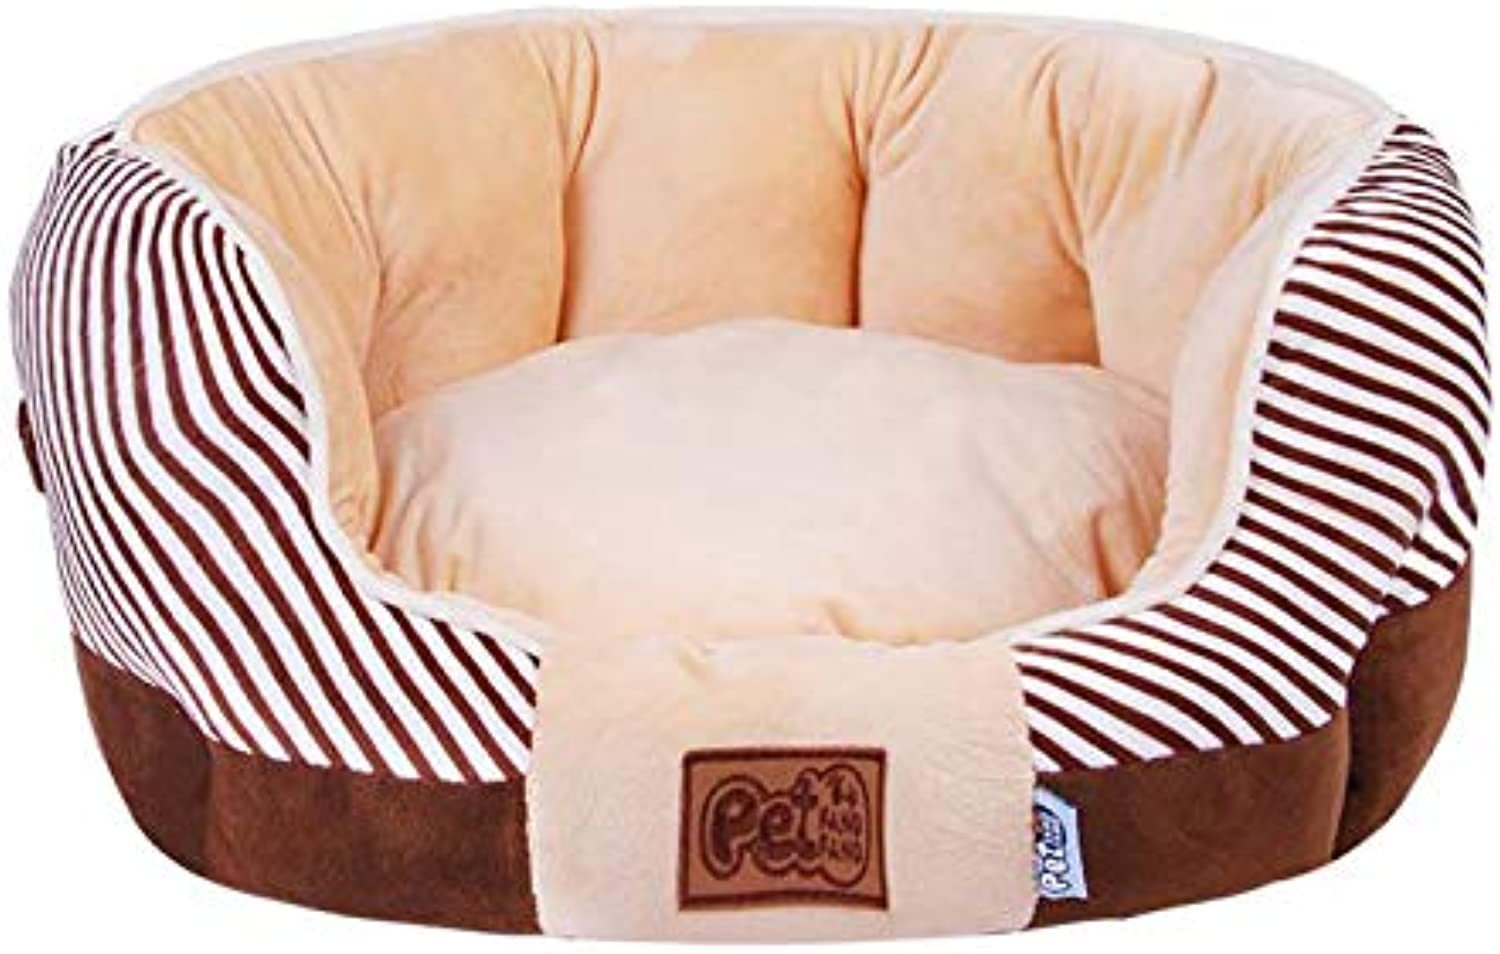 Round Warm Pet Bed High Elastic PP Cotton Pet Cat Dog Sofa Multiple Sizes Ideal for Small Large Cat Dog,M